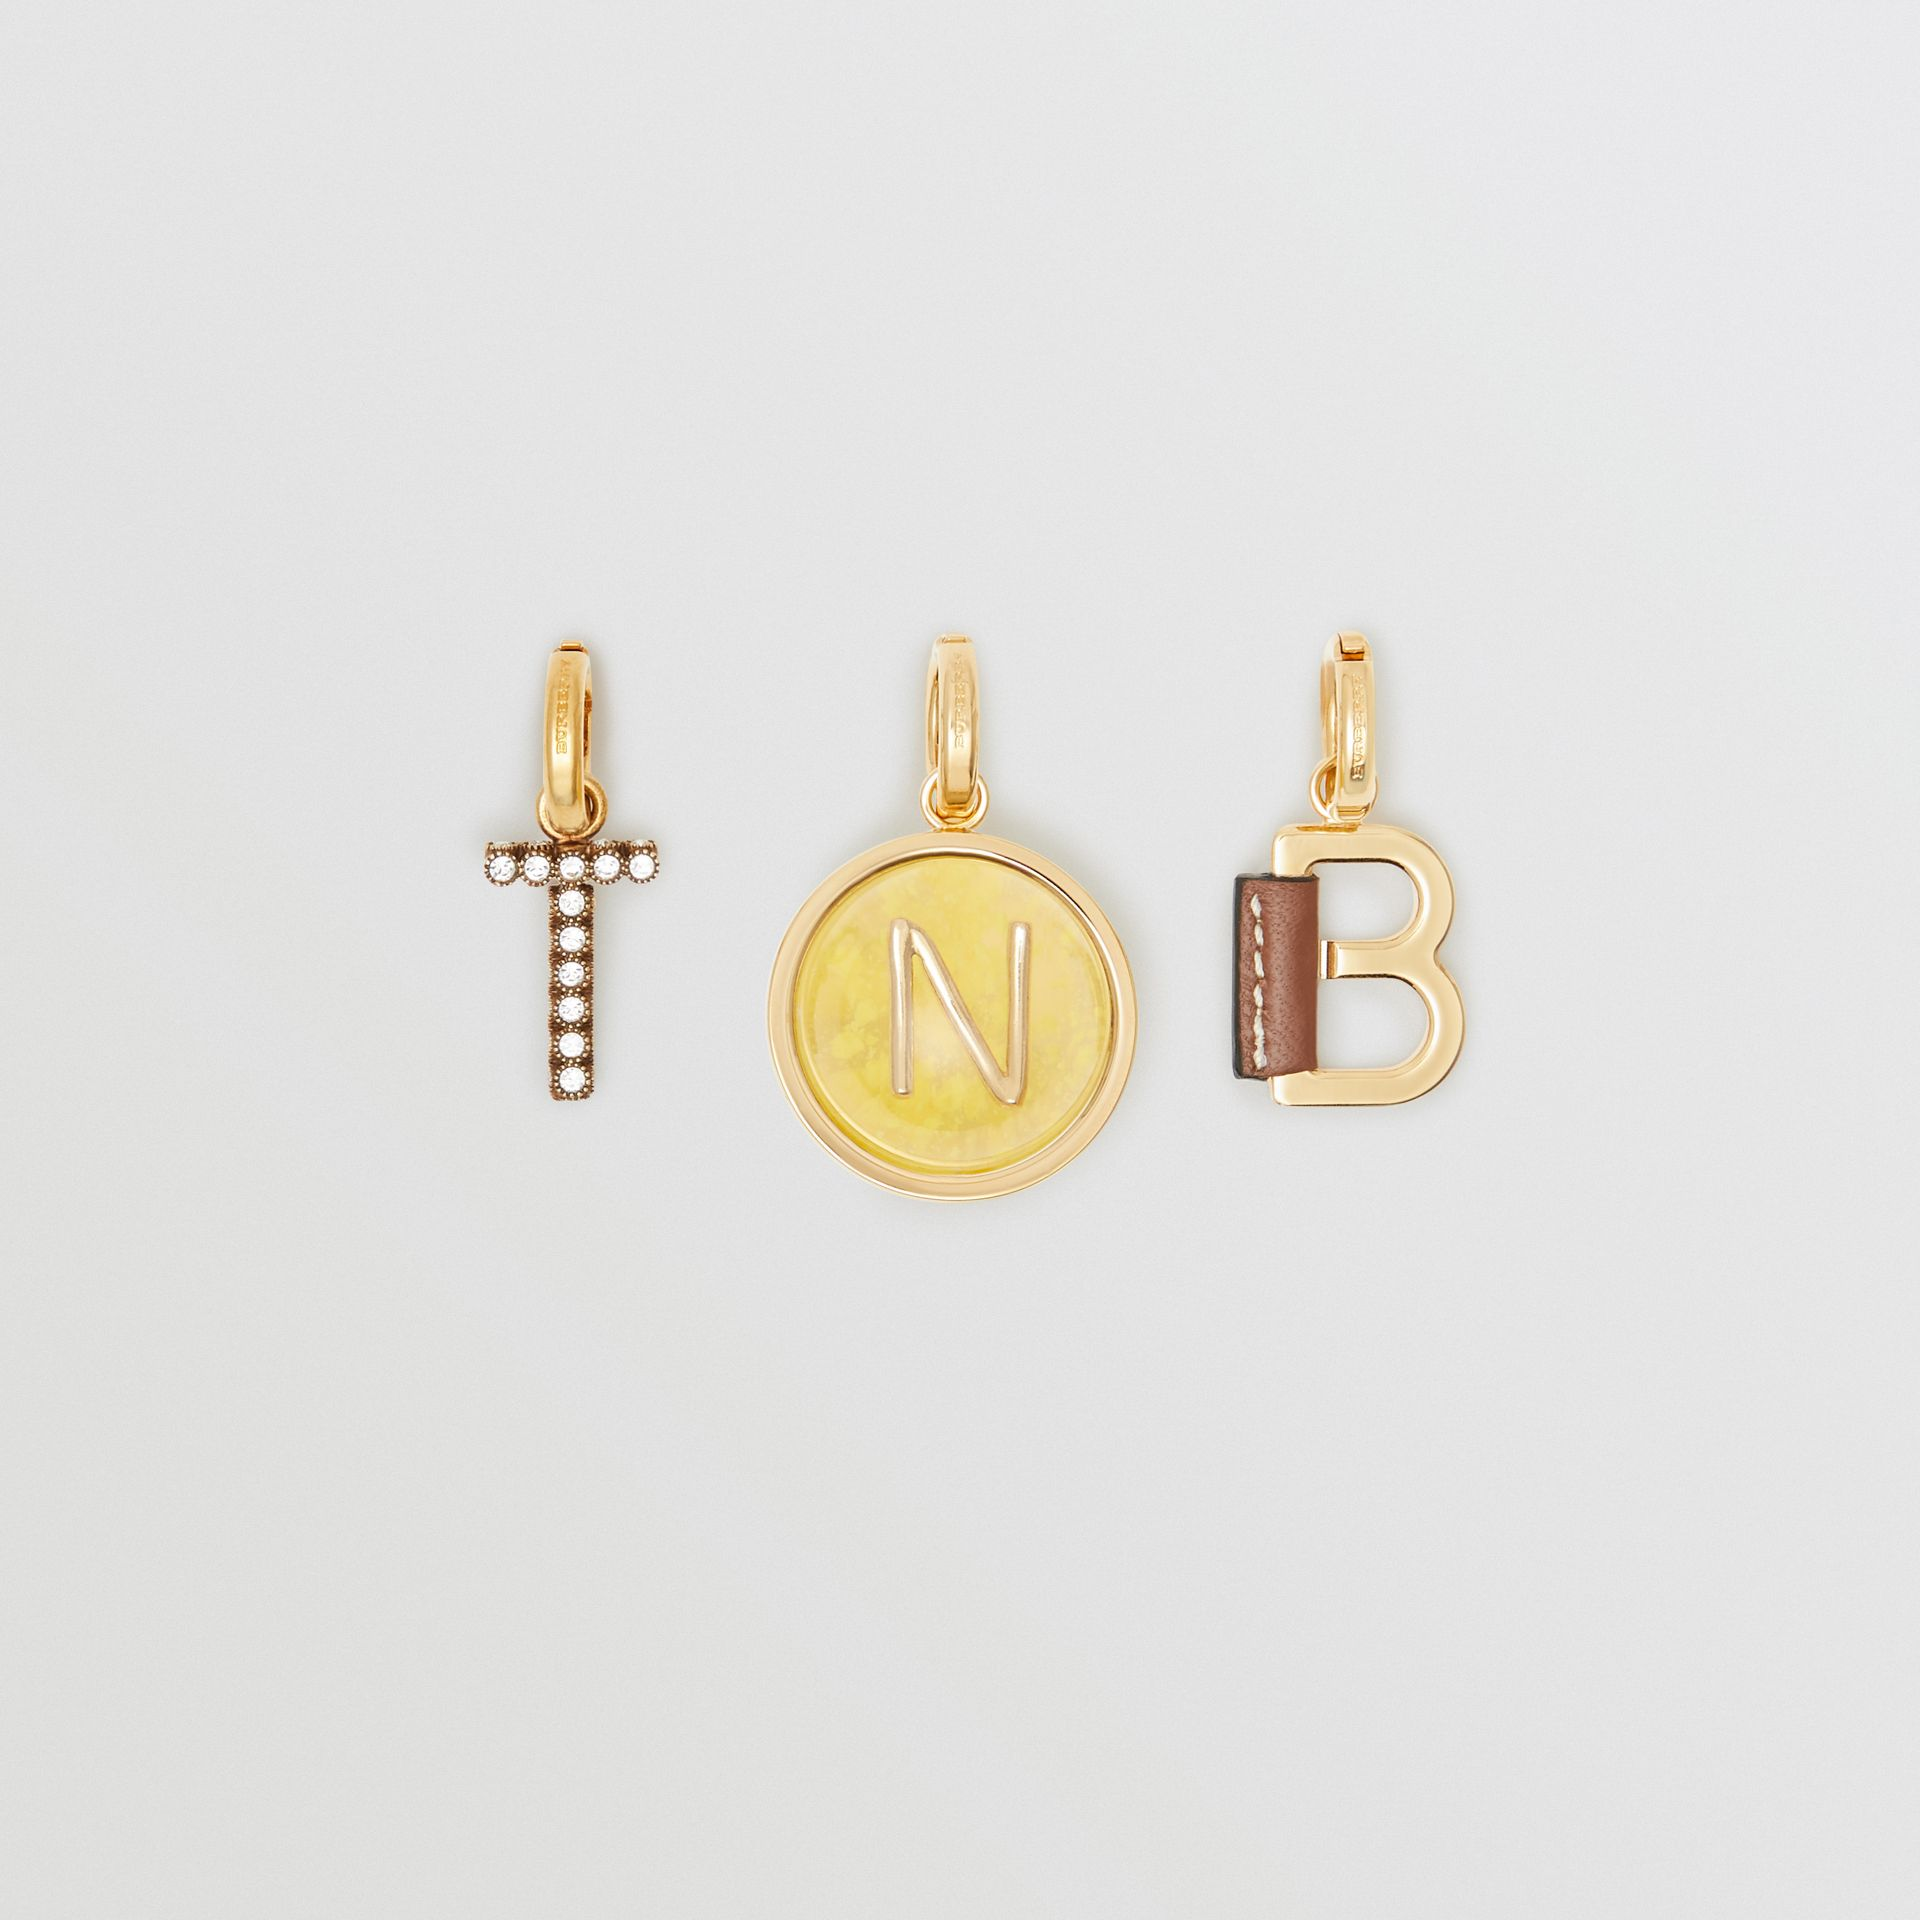 Marbled Resin 'I' Alphabet Charm in Gold/mimosa - Women | Burberry Australia - gallery image 1